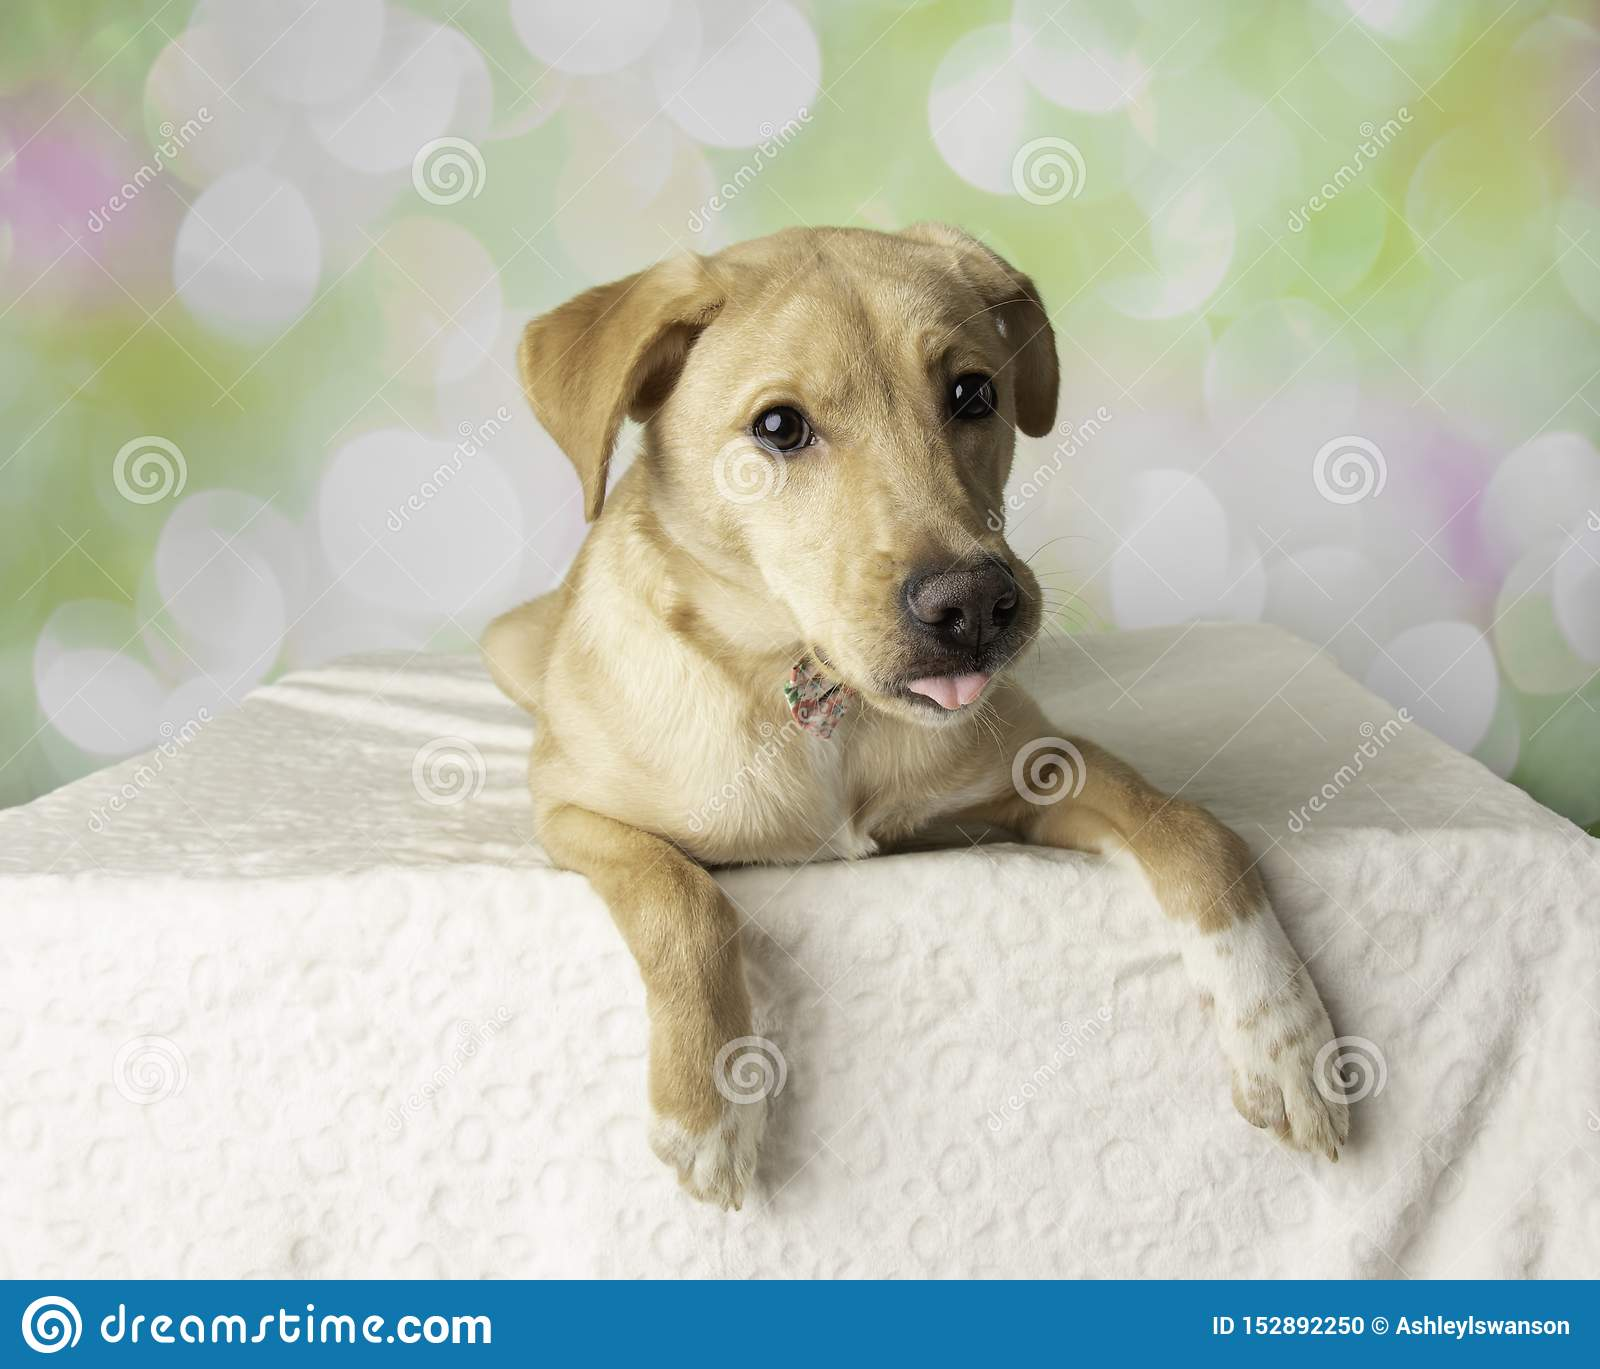 Labrador Mix Dog Portrait With Colorful Background Lying Down